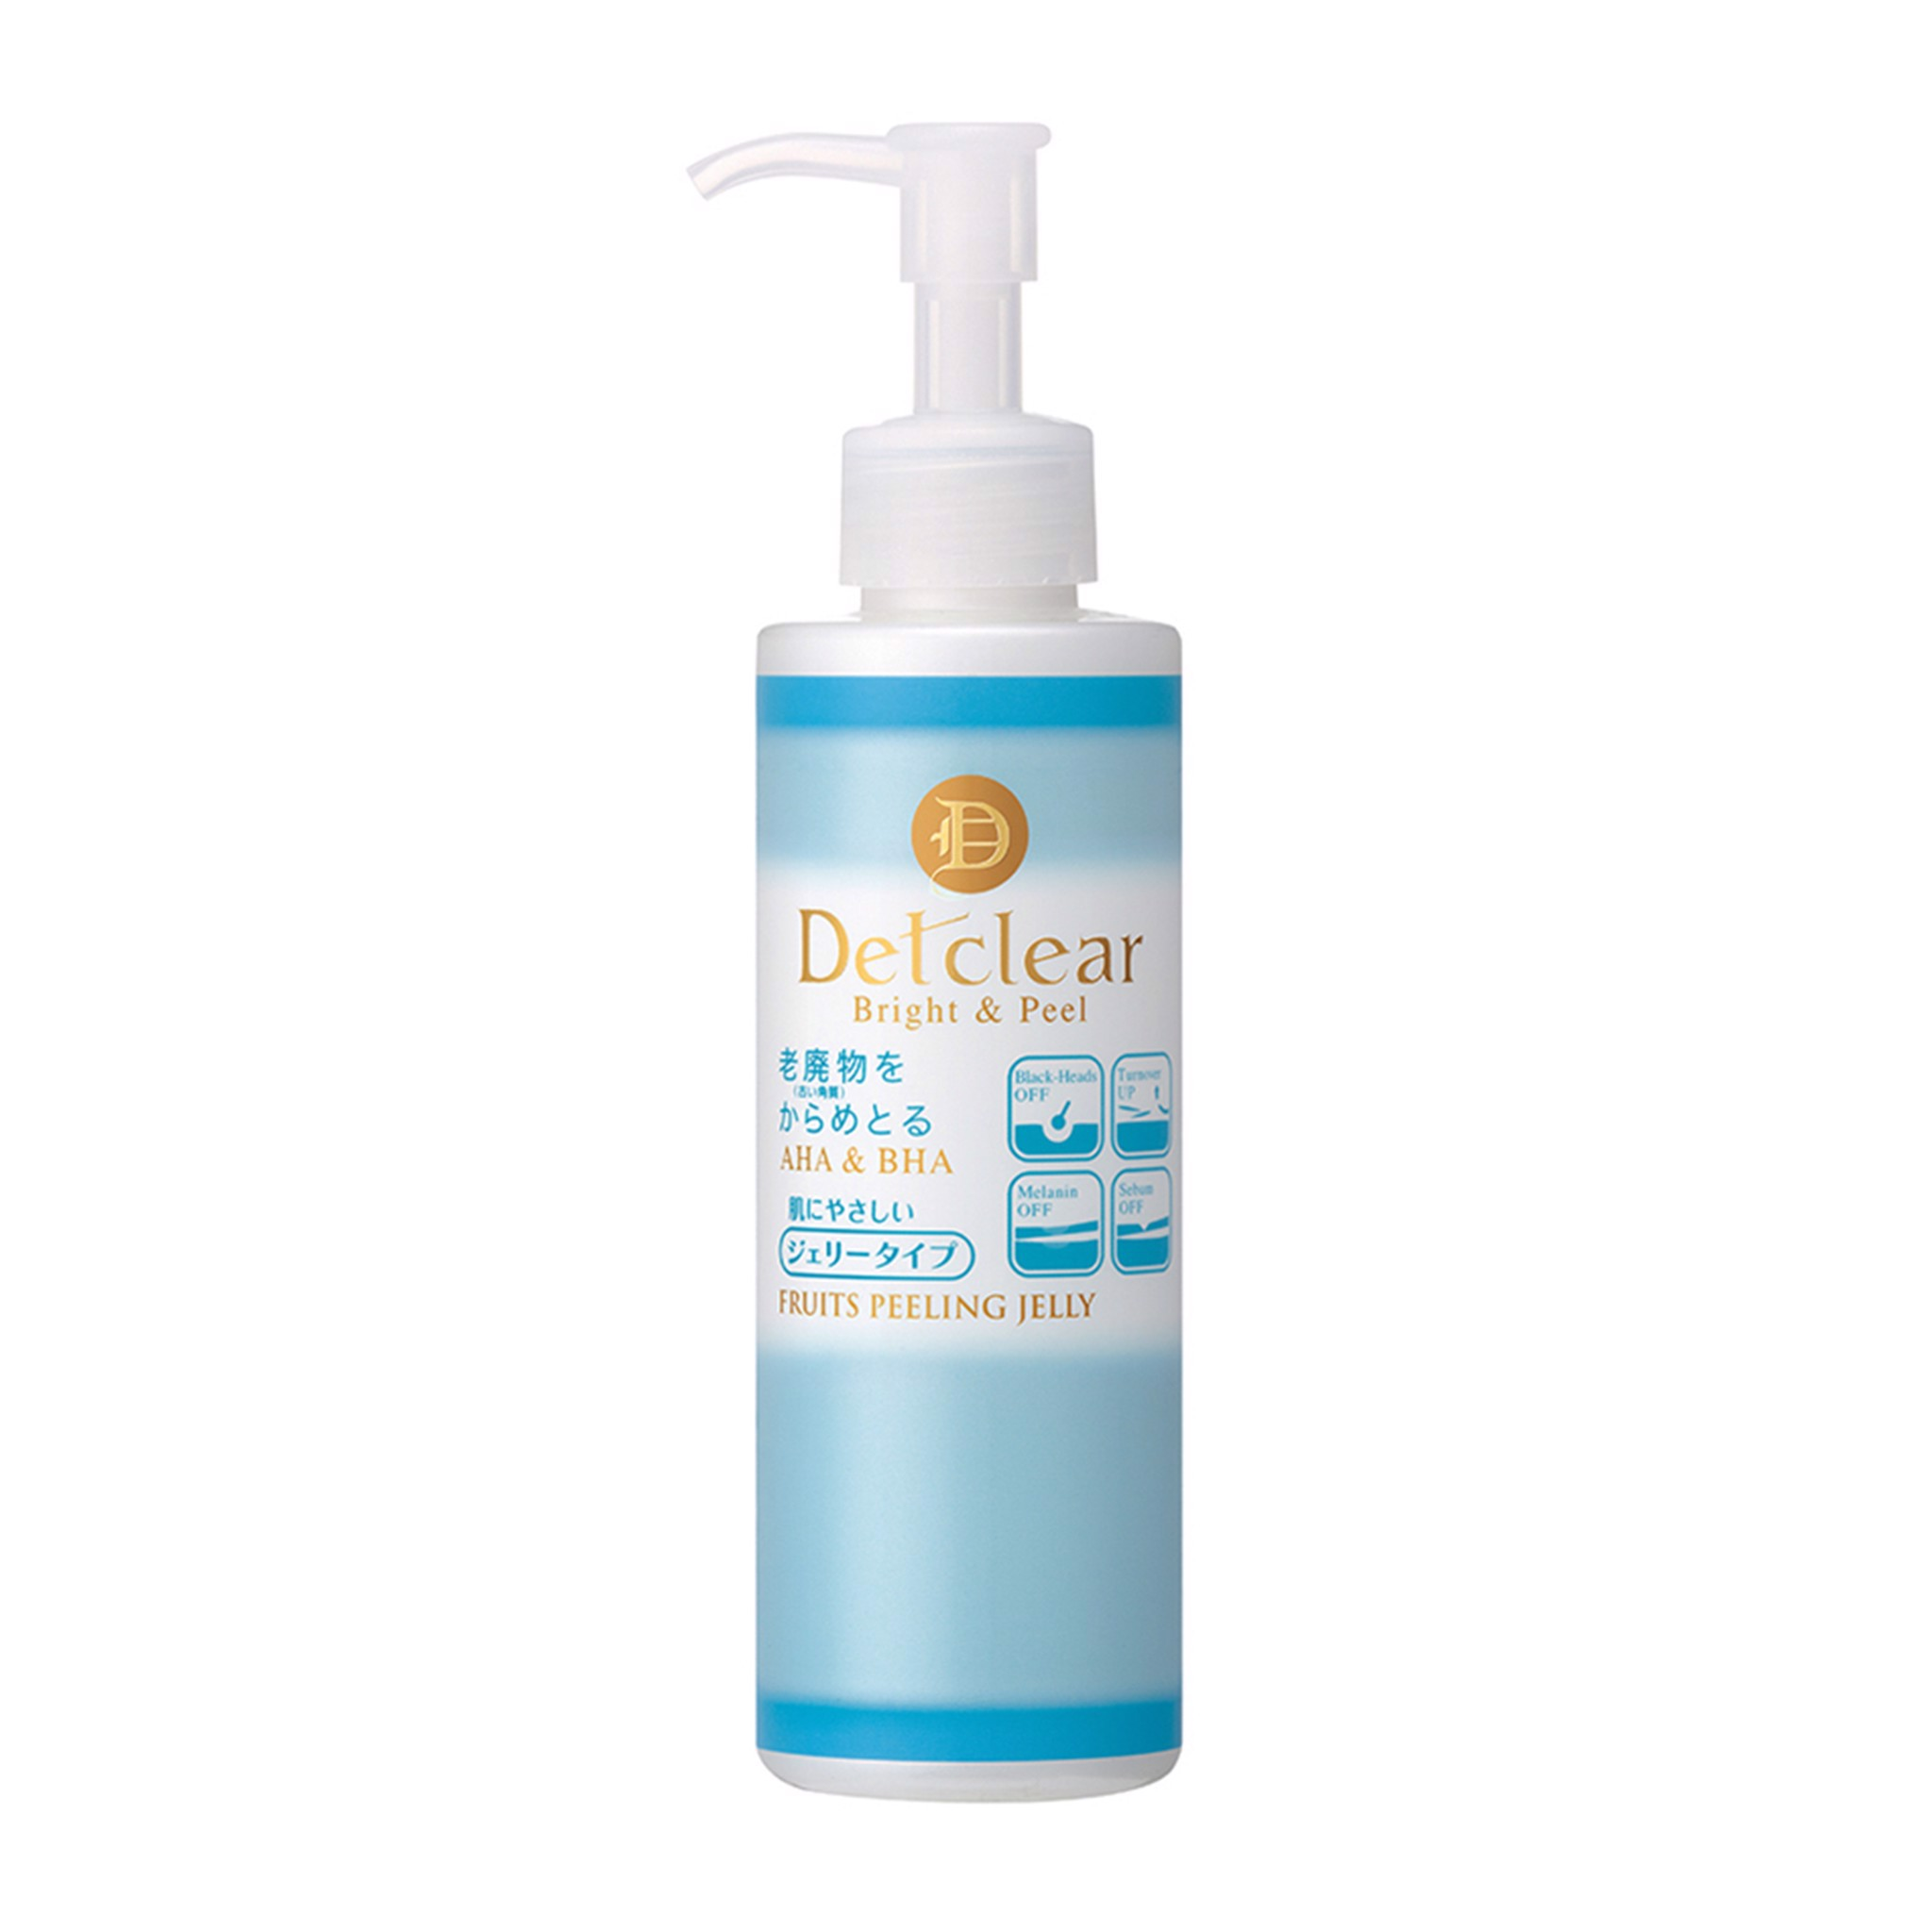 Gel tẩy da chết Detclear Bright & Peel (180ml)